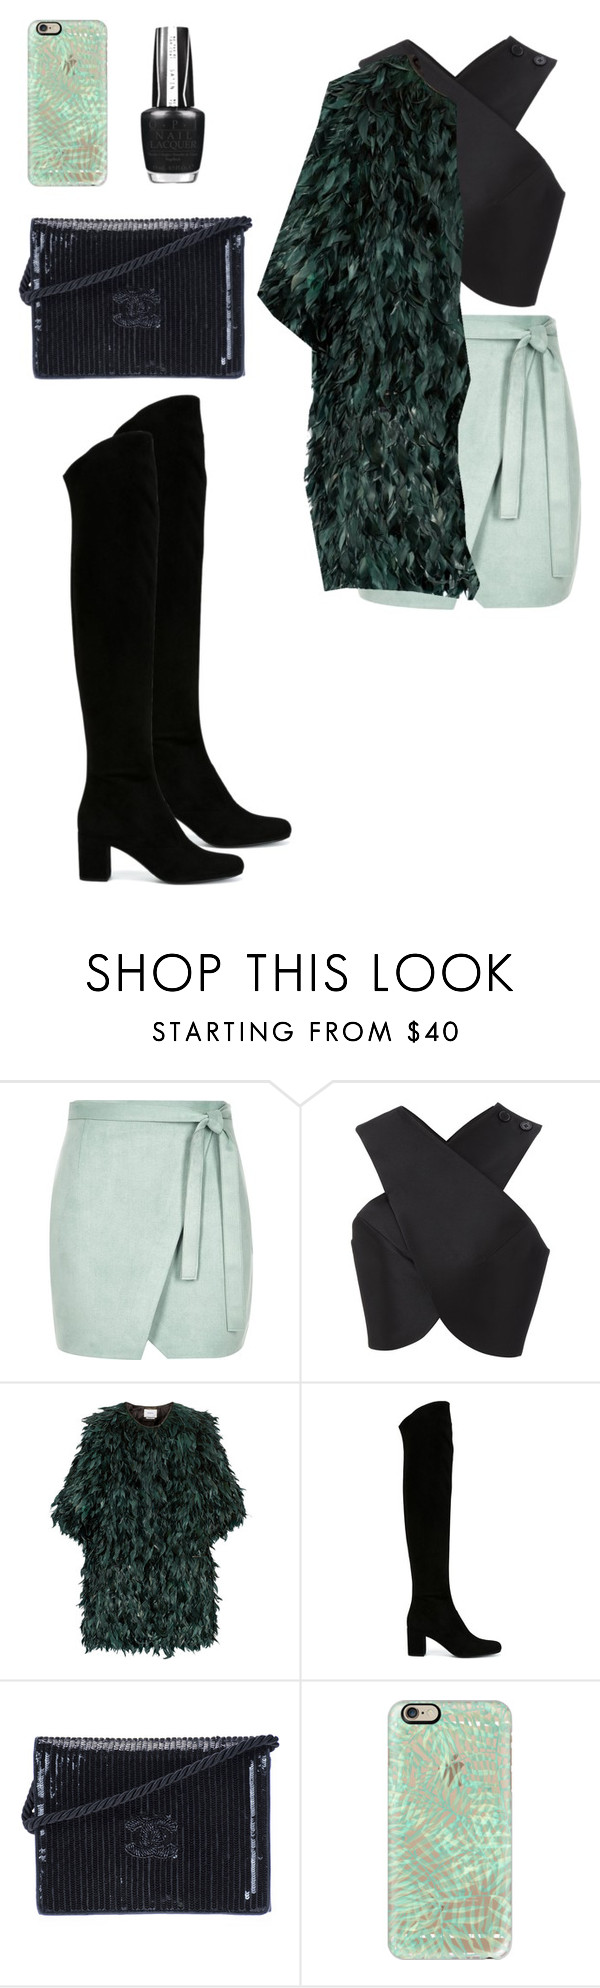 """""""Untitled #389"""" by coockie-and-black-forest-gateaus ❤ liked on Polyvore featuring moda, River Island, Carven, Erdem, Yves Saint Laurent, Chanel, Casetify, OPI, women's clothing y women"""